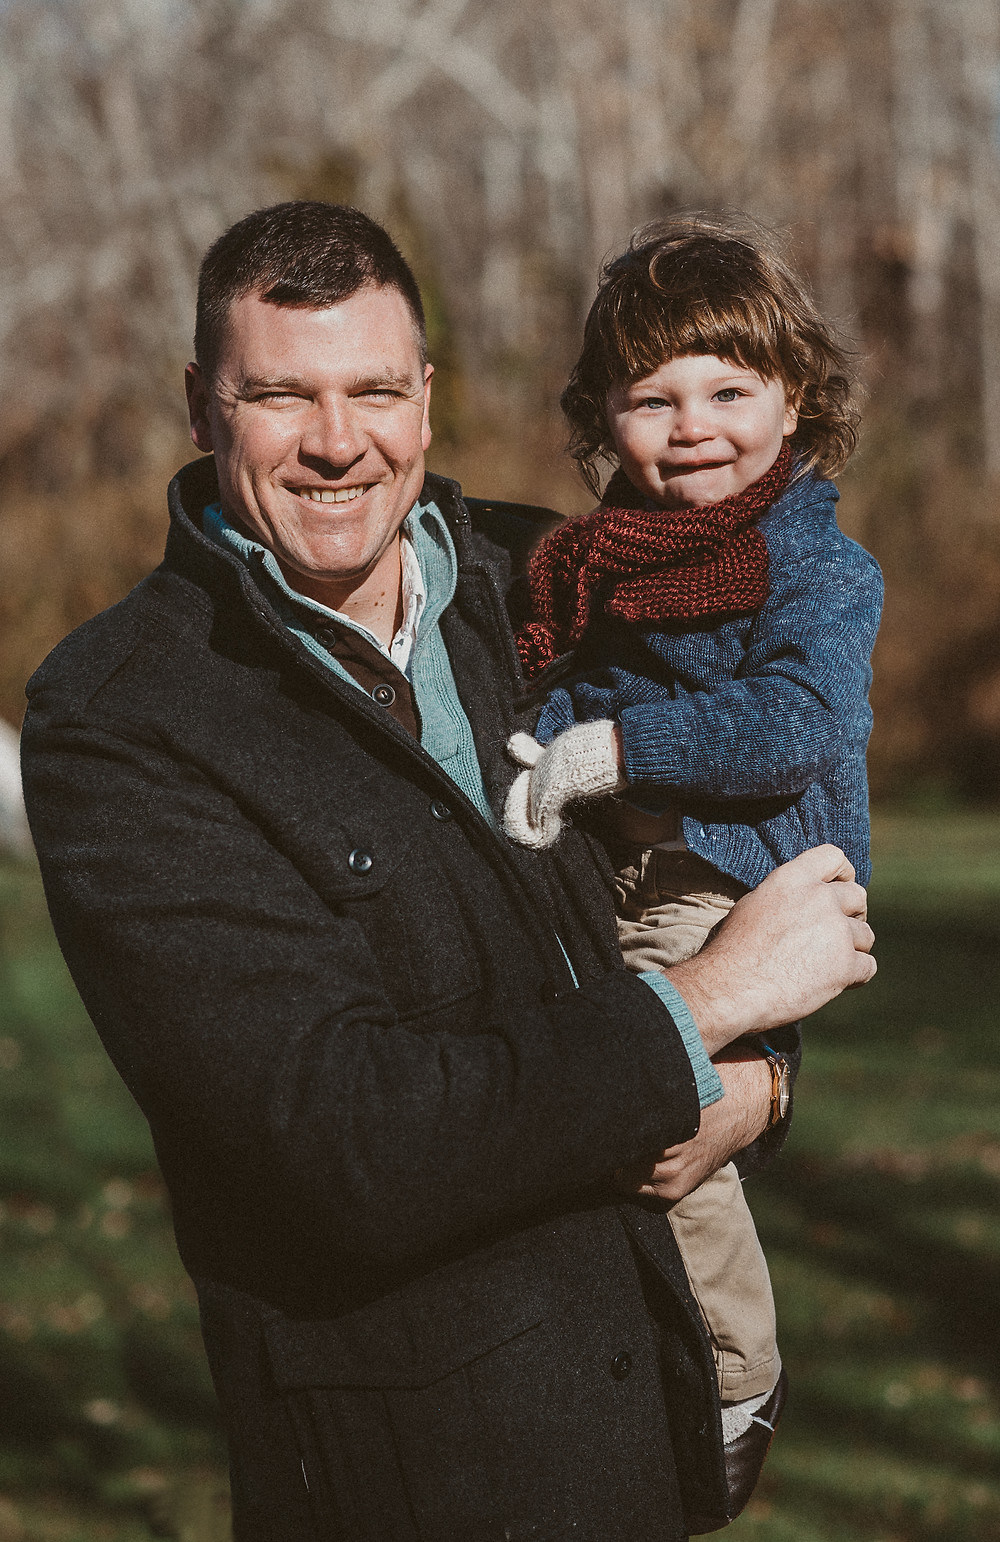 Father holding son smiling at the New London CT family photographer